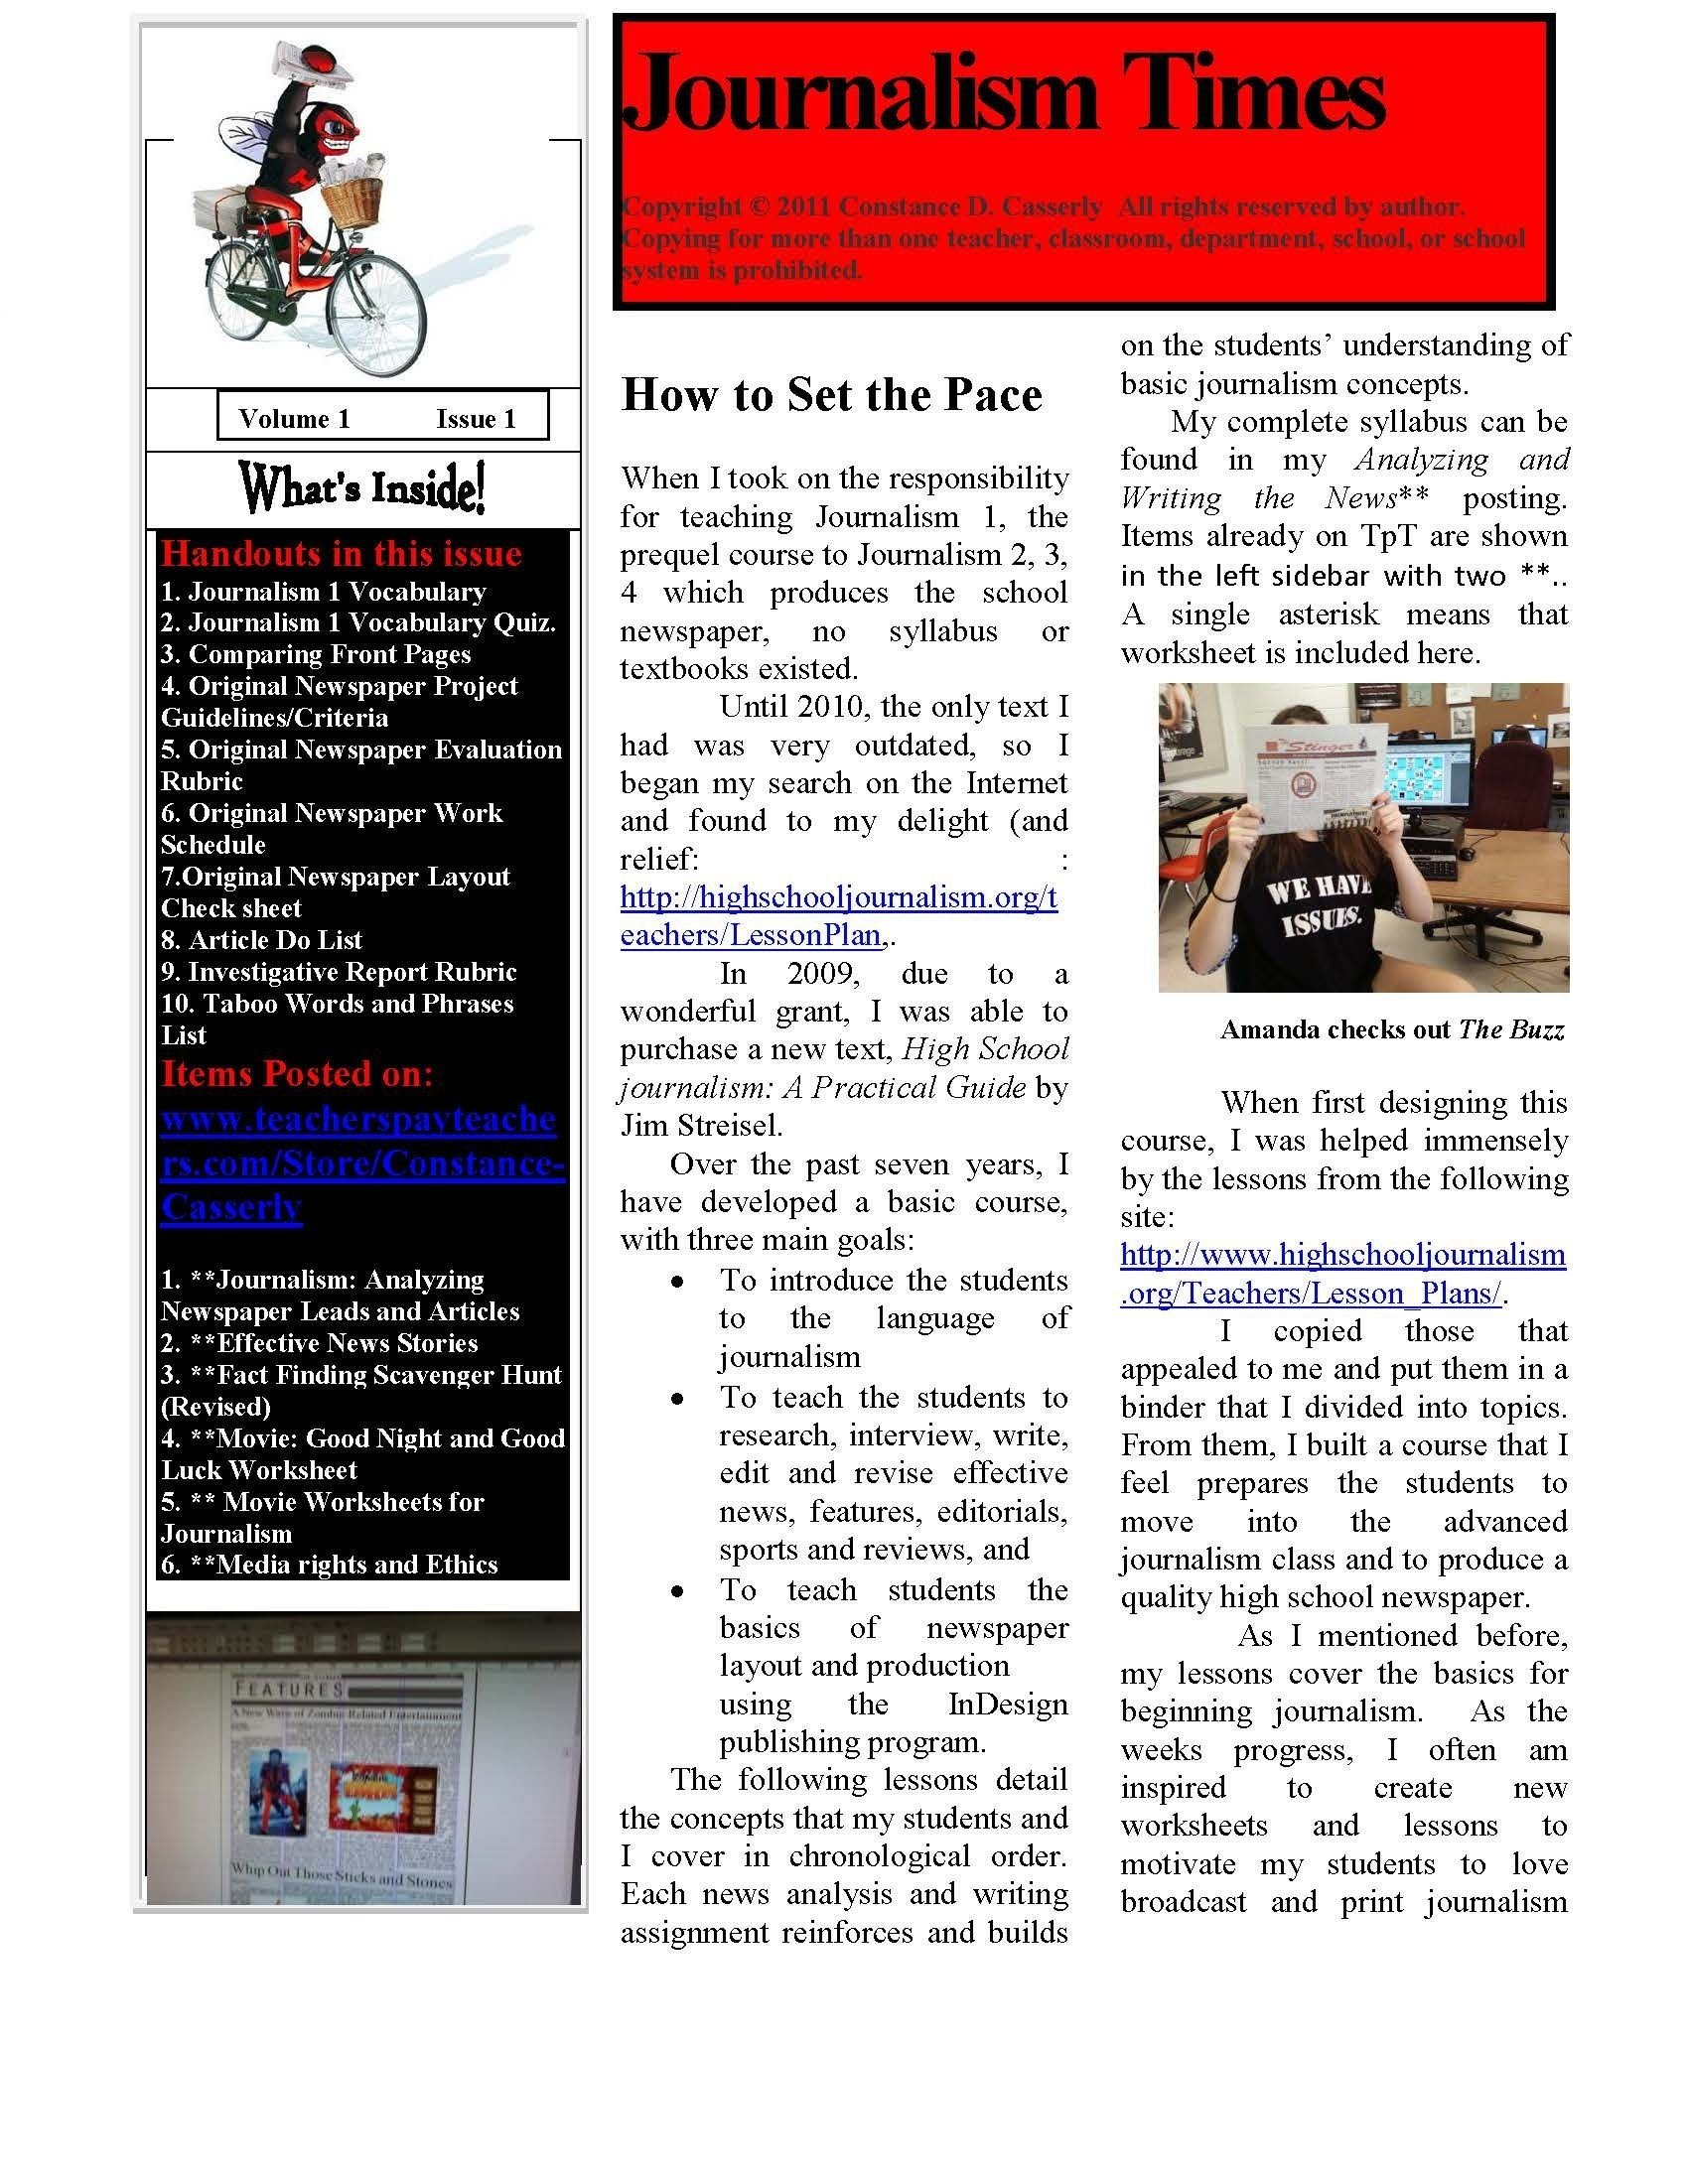 10 Nice High School Newspaper Article Ideas journalism whole course year overview and lesson ideas school 2